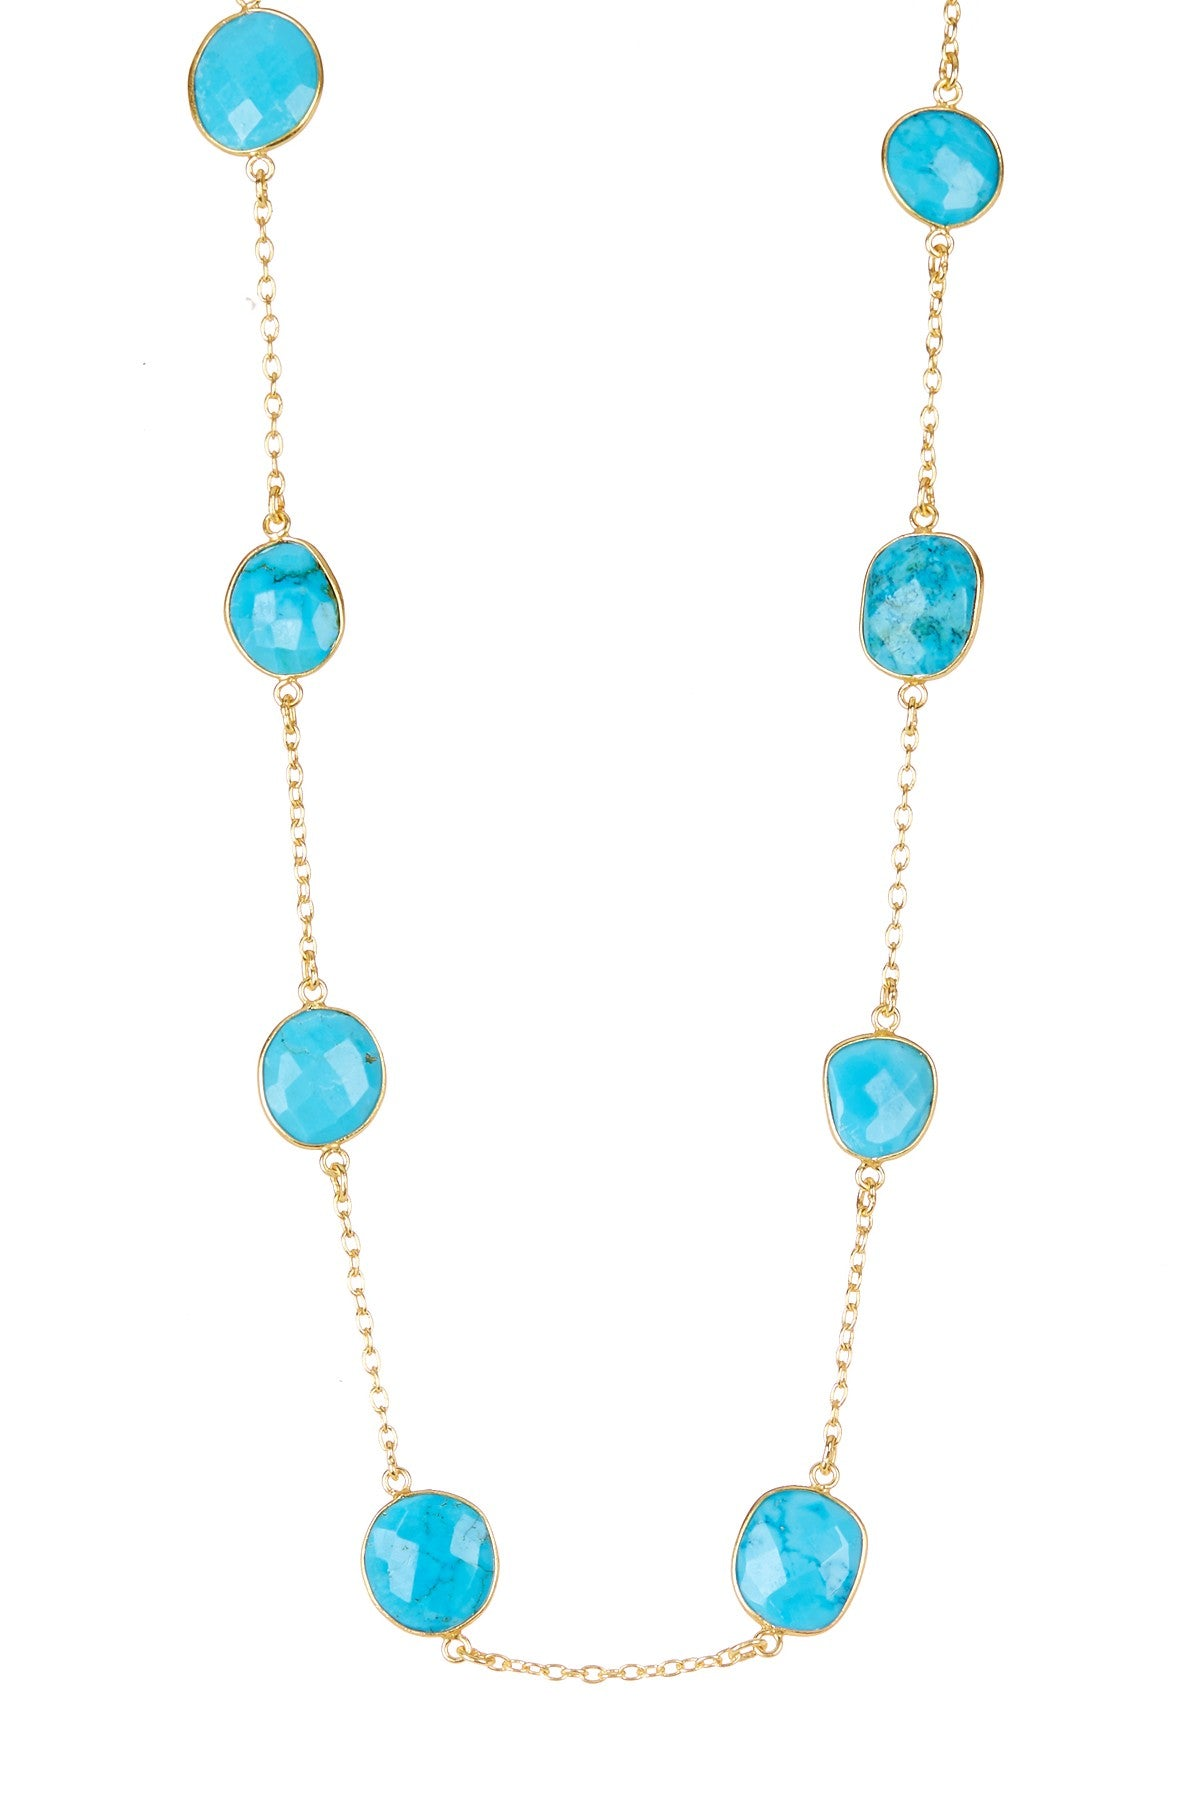 18K Gold Turquoise Station Necklace